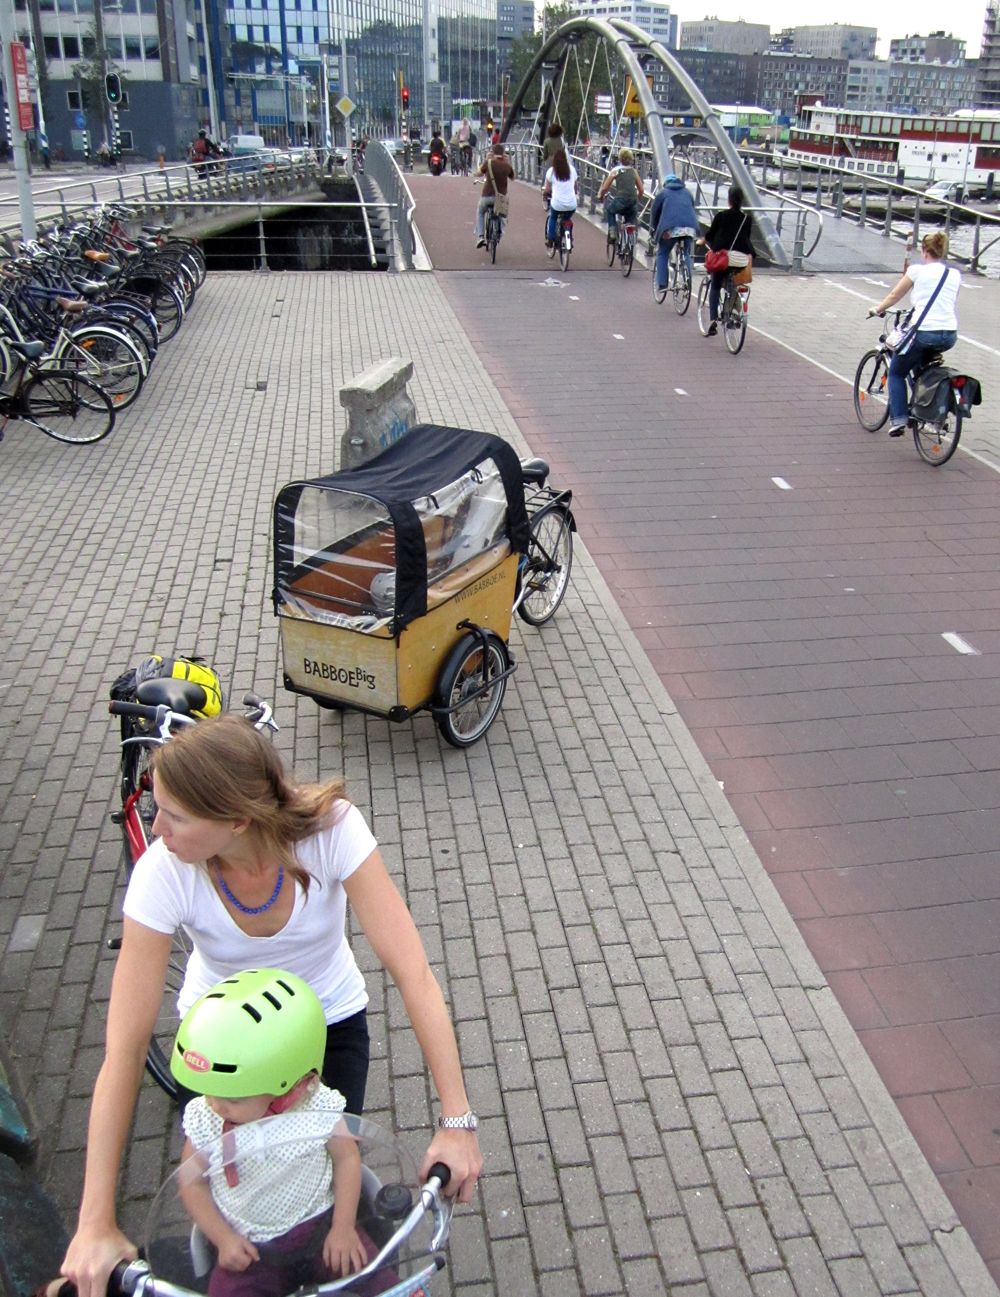 Founder, Megan Ramey, biking in Amsterdam on family vacation with her 2 year old daughter. The vision for North America of normal living by bikeis why she has pledged to donate 25% of Bikabout's annual revenue every year.